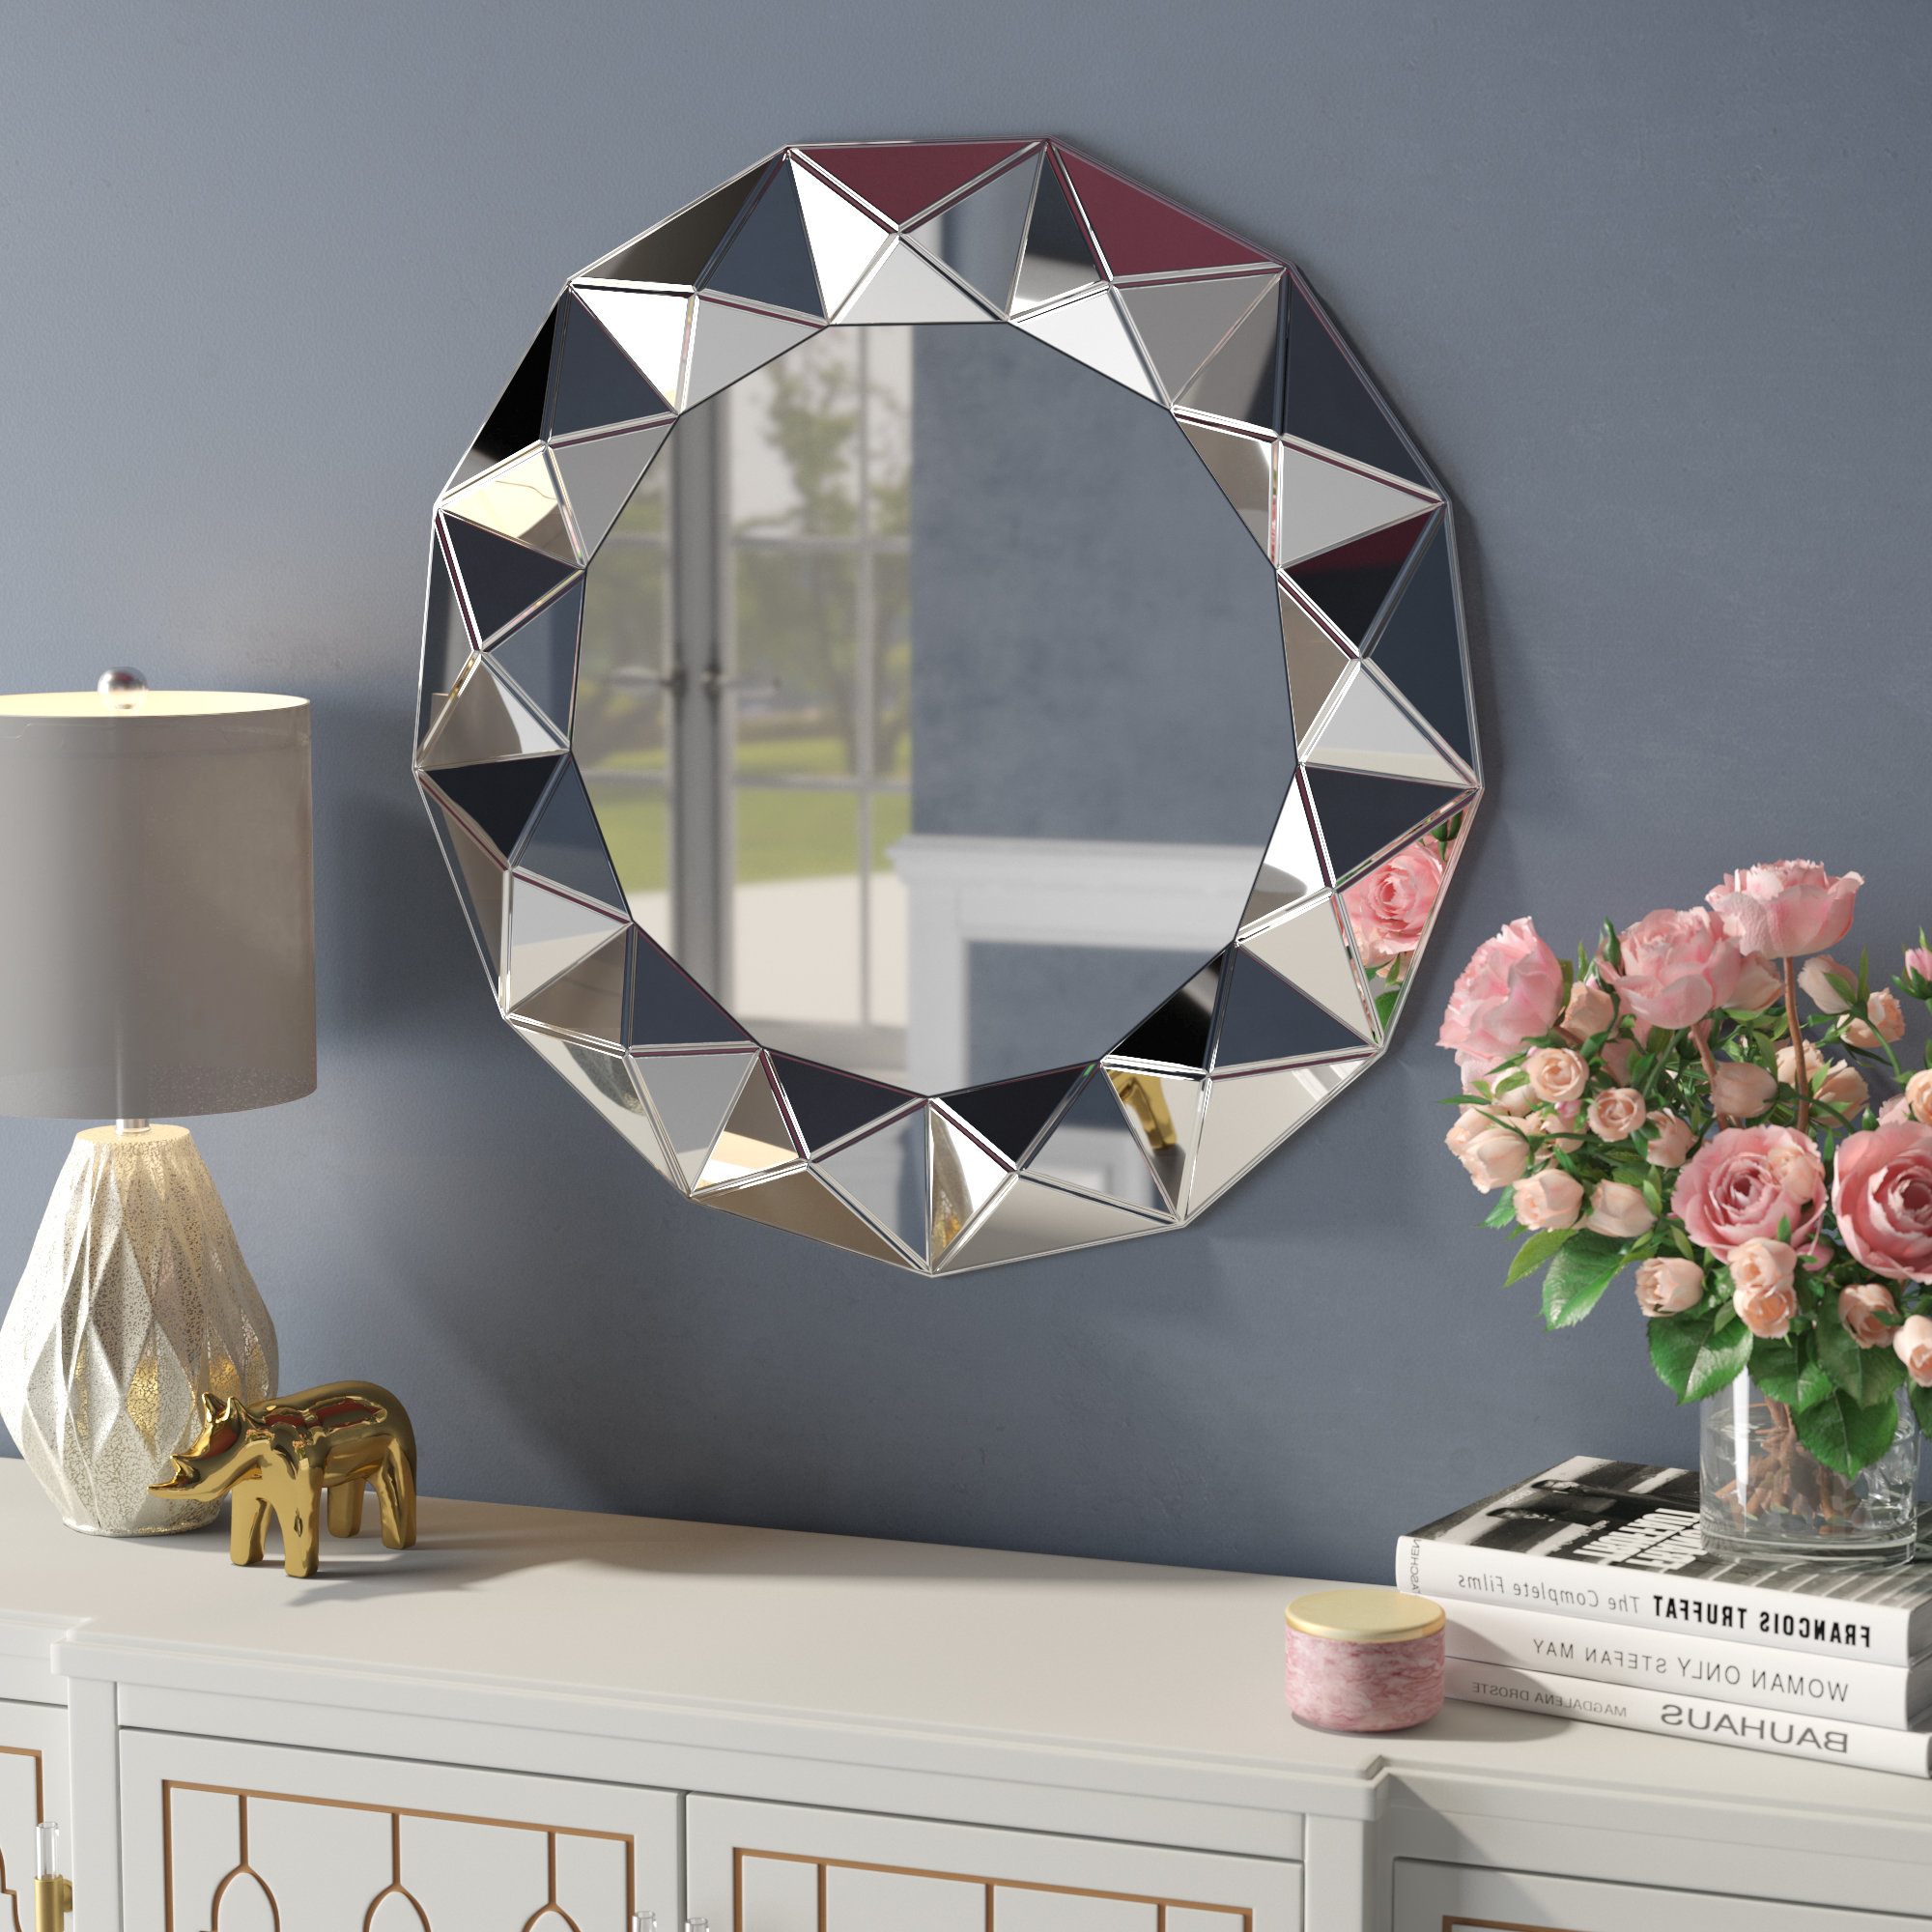 Traditional Round Decorative Wall Mirror Inside Well Known Decorative Round Wall Mirrors (View 19 of 20)